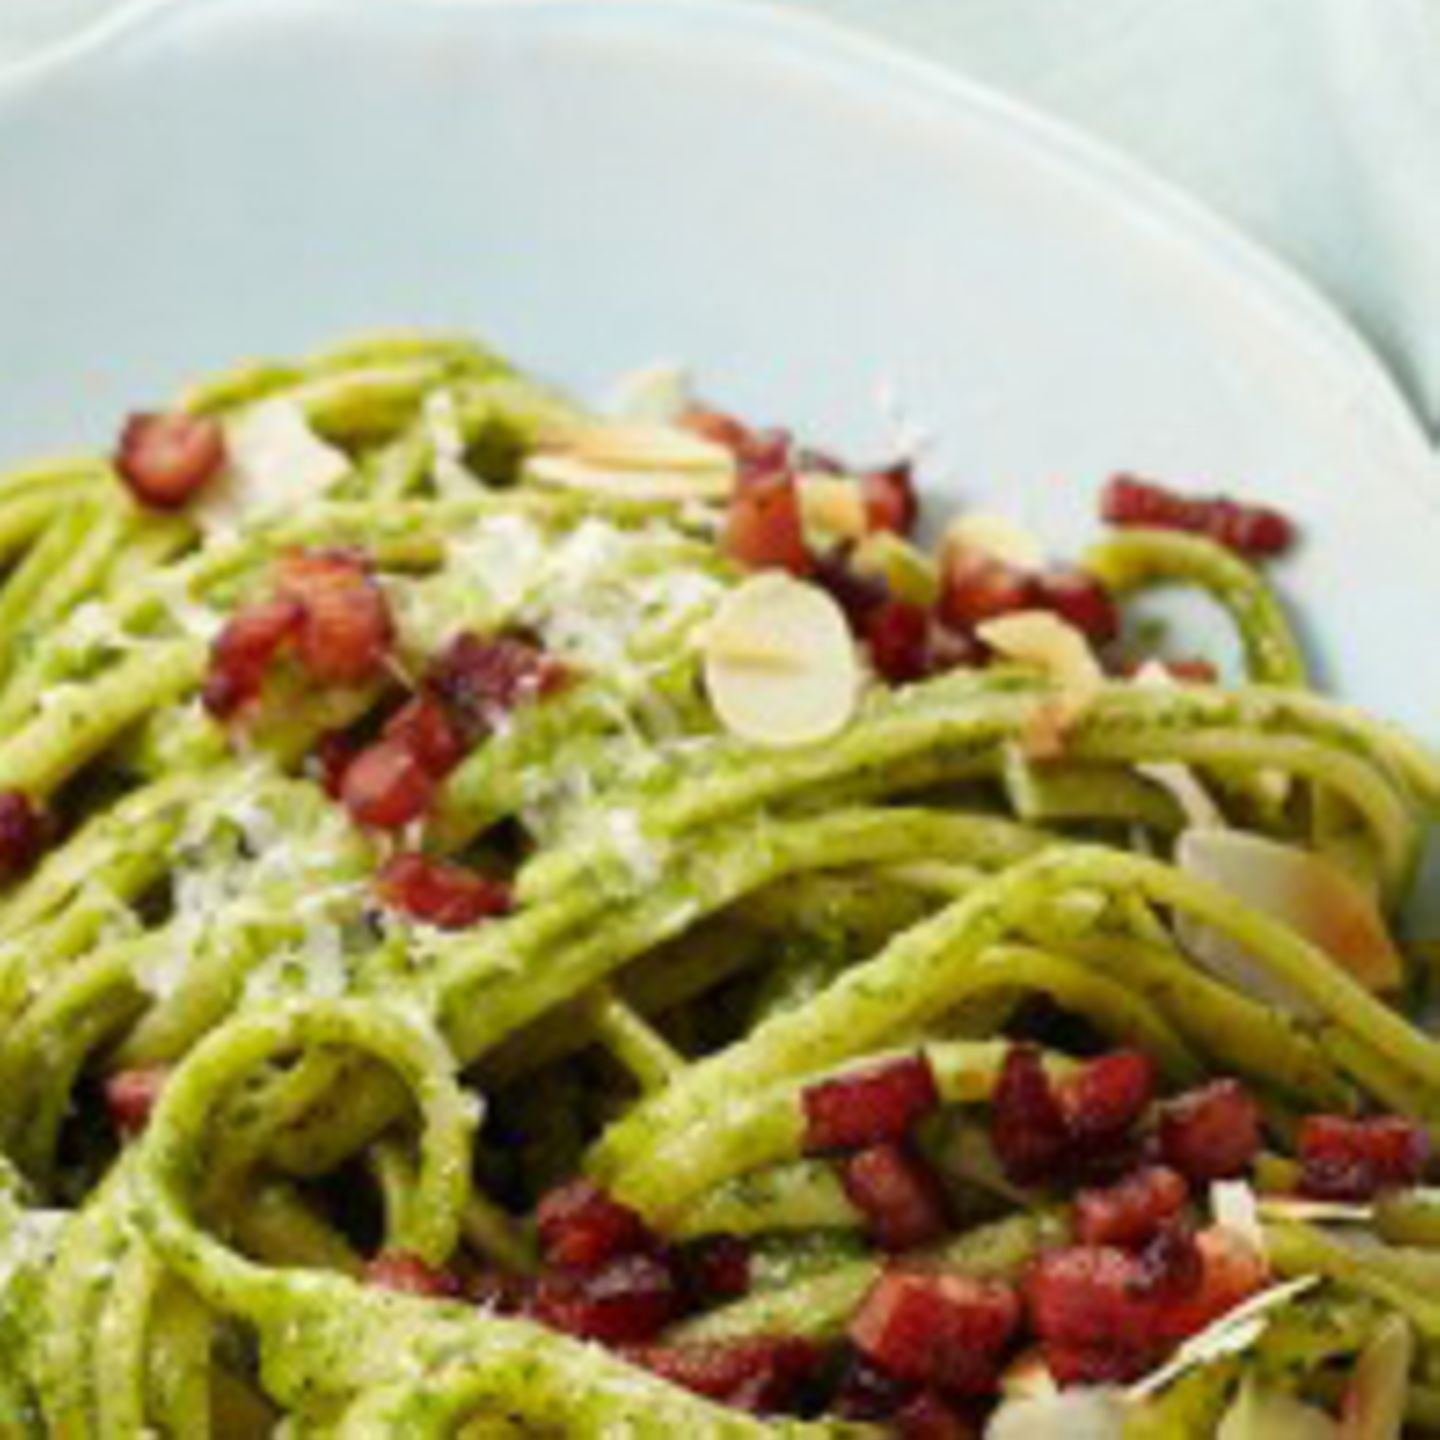 Pesto 10 x anders – jedesmal genial!